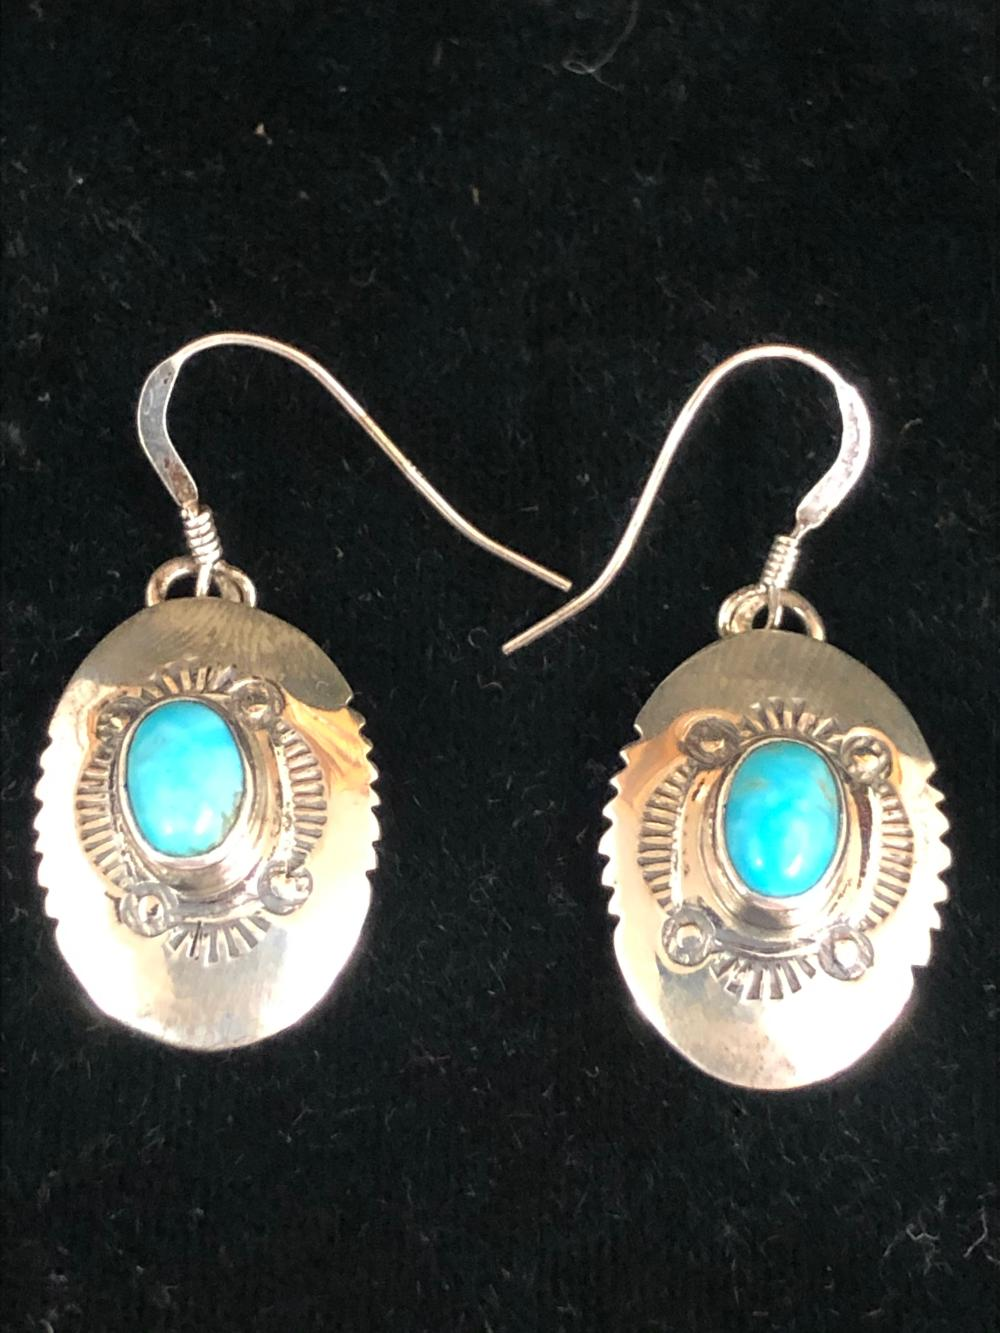 Turquoise stone sterling silver earrings